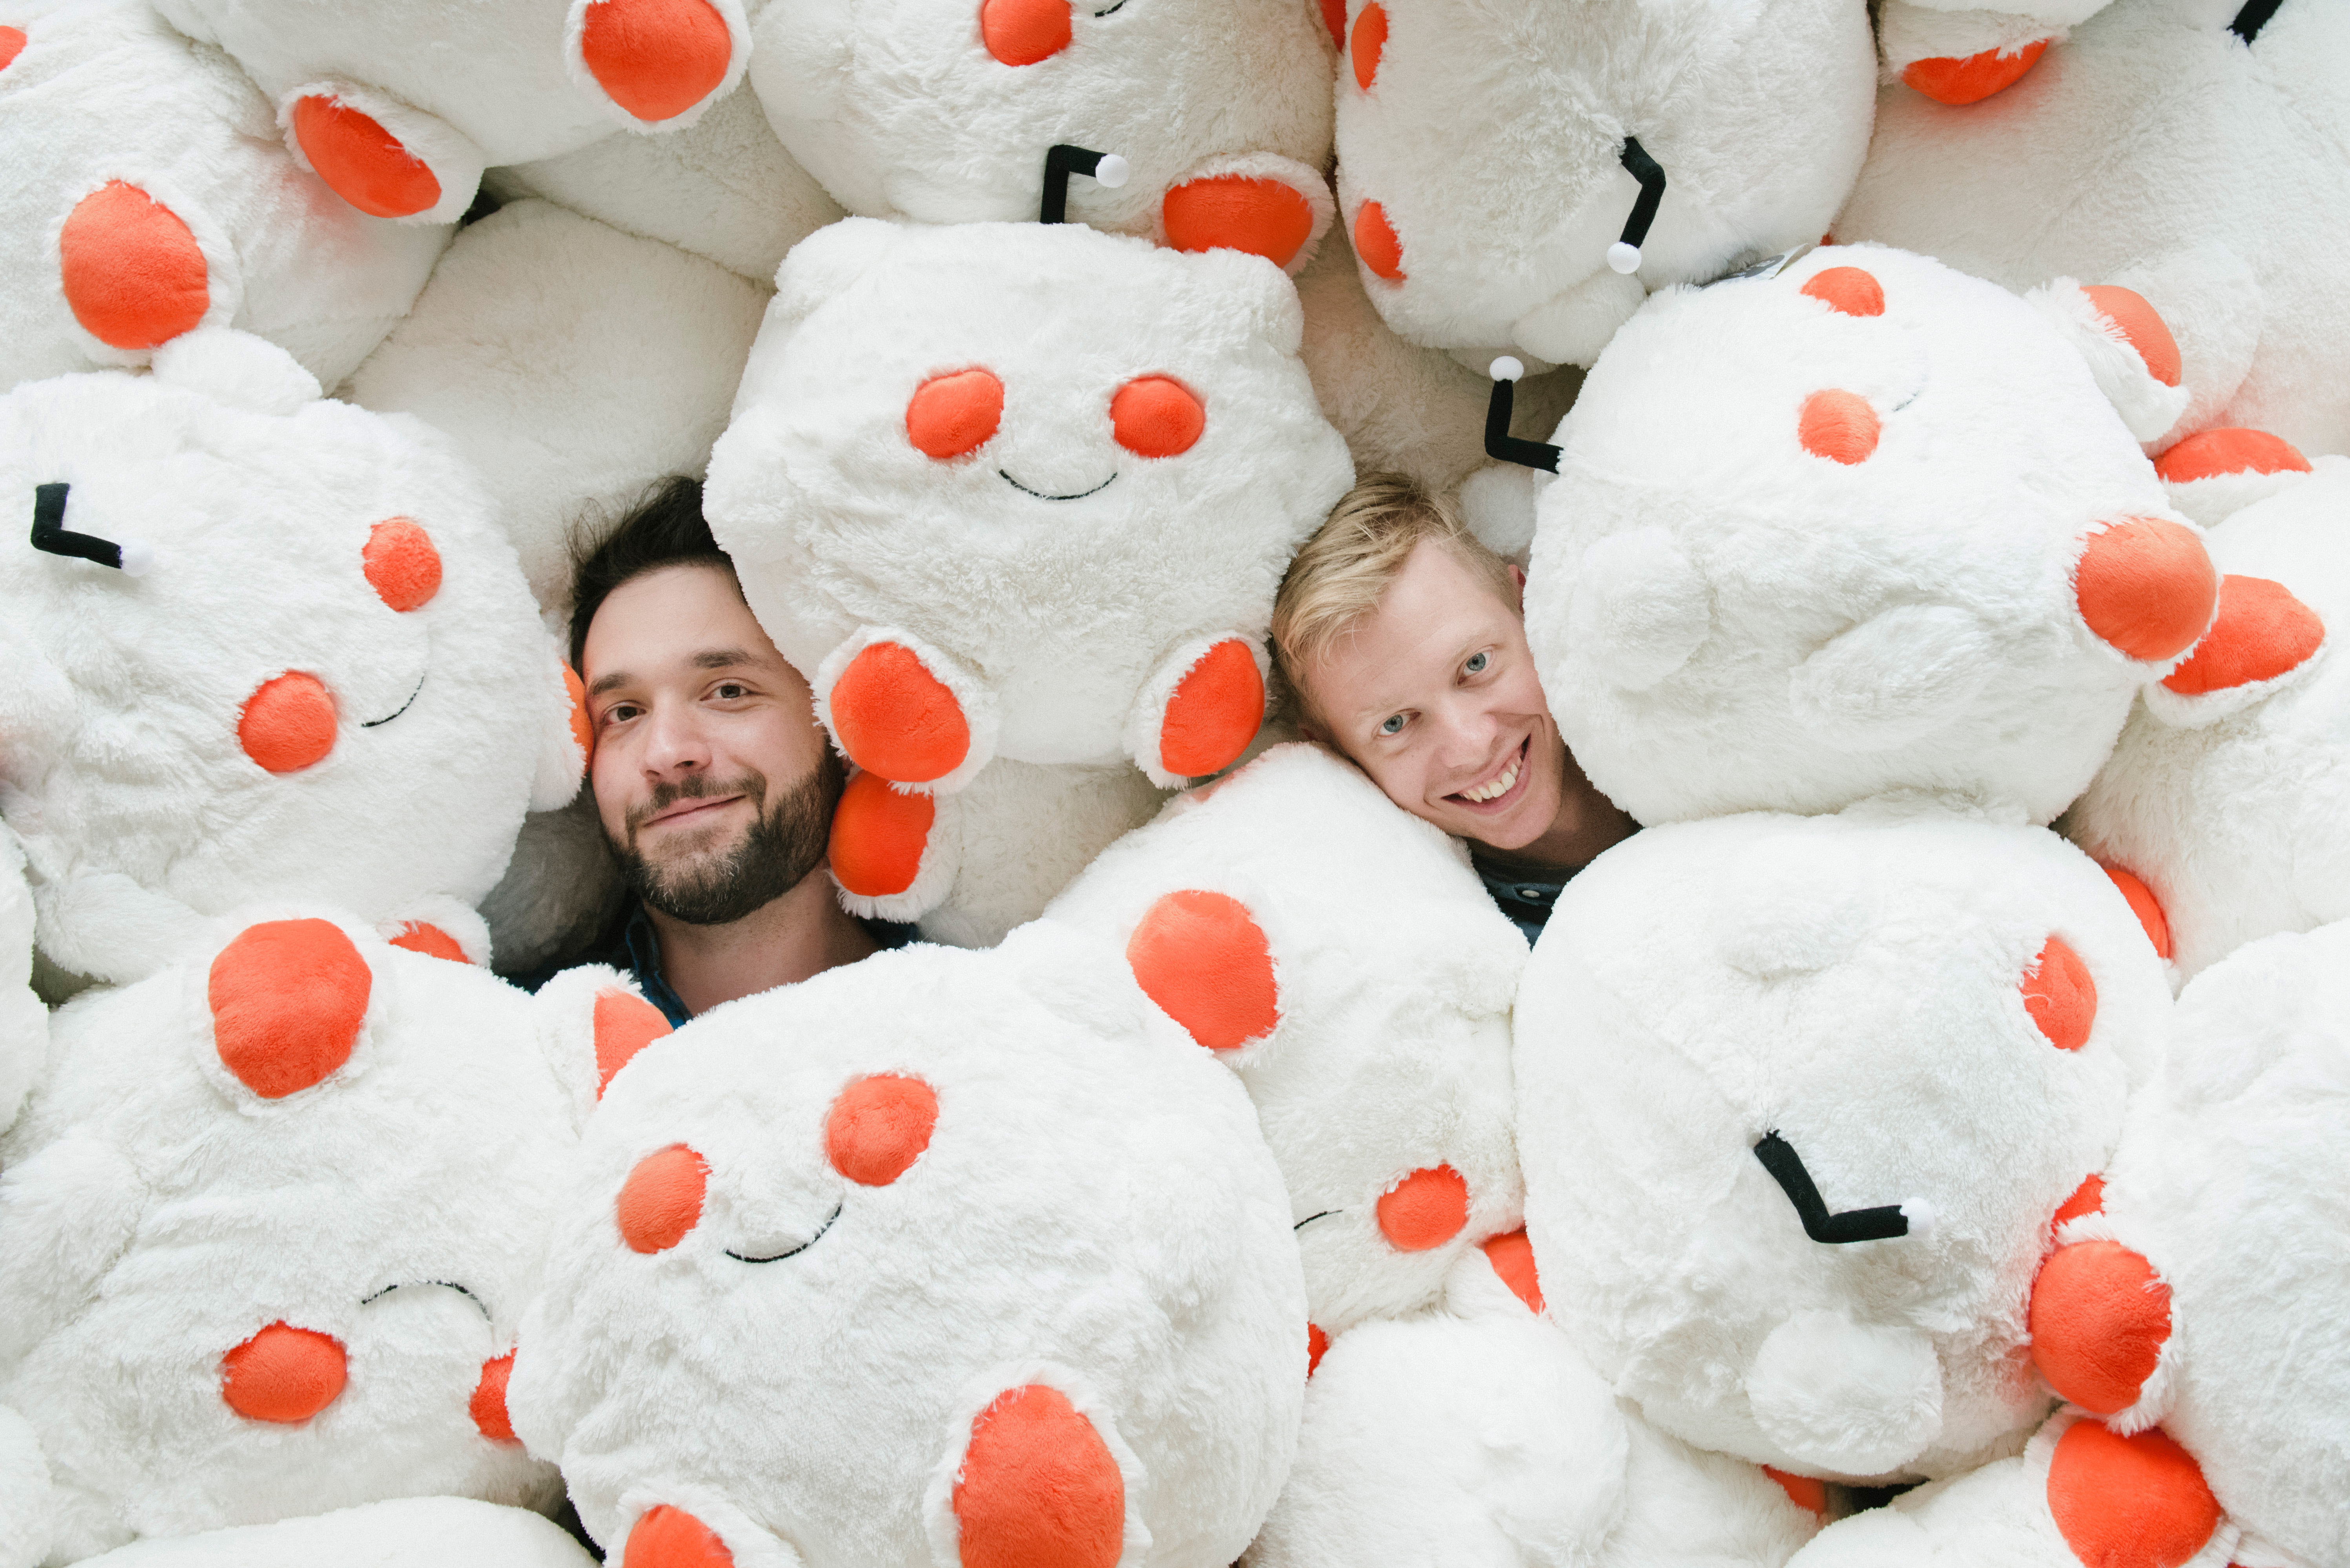 Reddit raised $200 million in funding and is now valued at